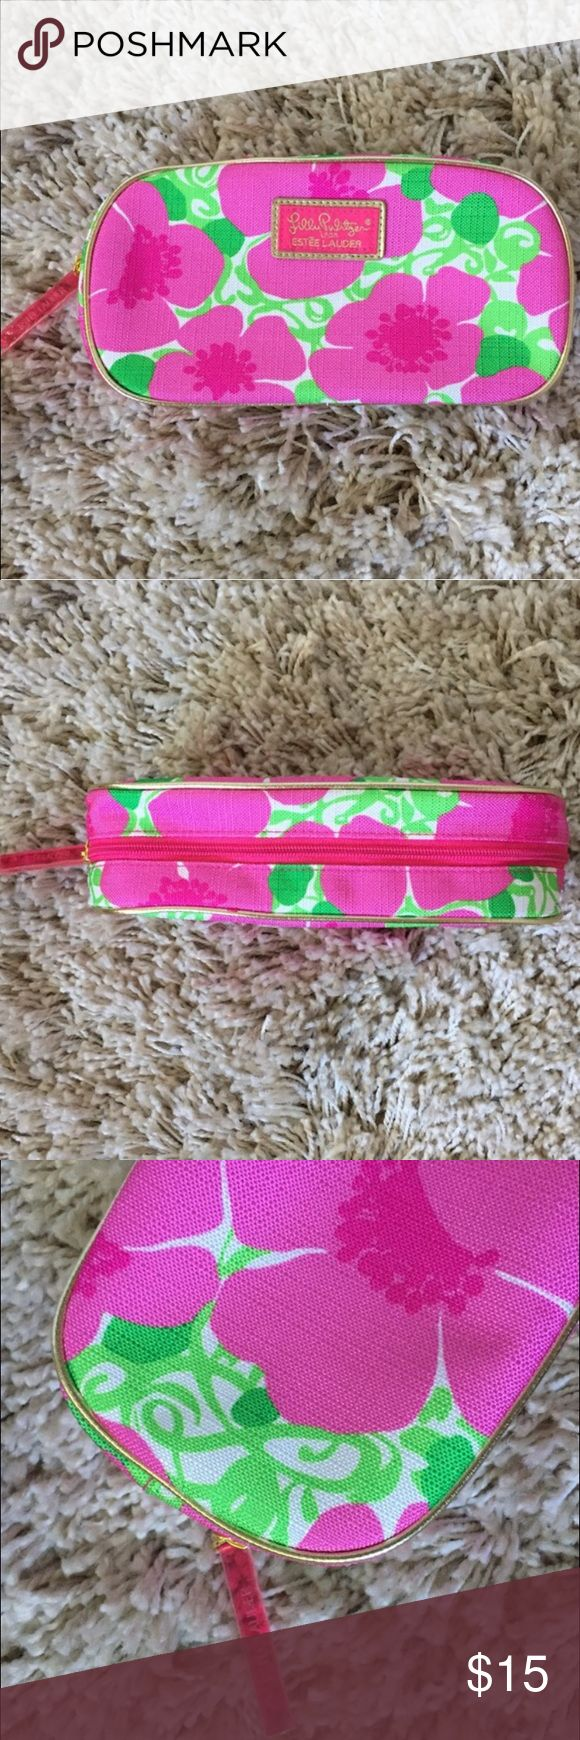 """SALE  Lilly Pulitzer + Estée Lauder + Lilly Pulitzer for Estée Lauder makeup/accessories bag  + Never been used!  + Measures: 9"""" x 4.75""""  ⭐️All items are steamed cleaned and shipped within 48 hours of your purchase.   ⭐️If you would like any additional photos or have any questions please let me know.  ⭐️Sorry, no trades. But will listen to ALL fair offers. Thanks for shopping! Lilly Pulitzer Bags Cosmetic Bags & Cases"""